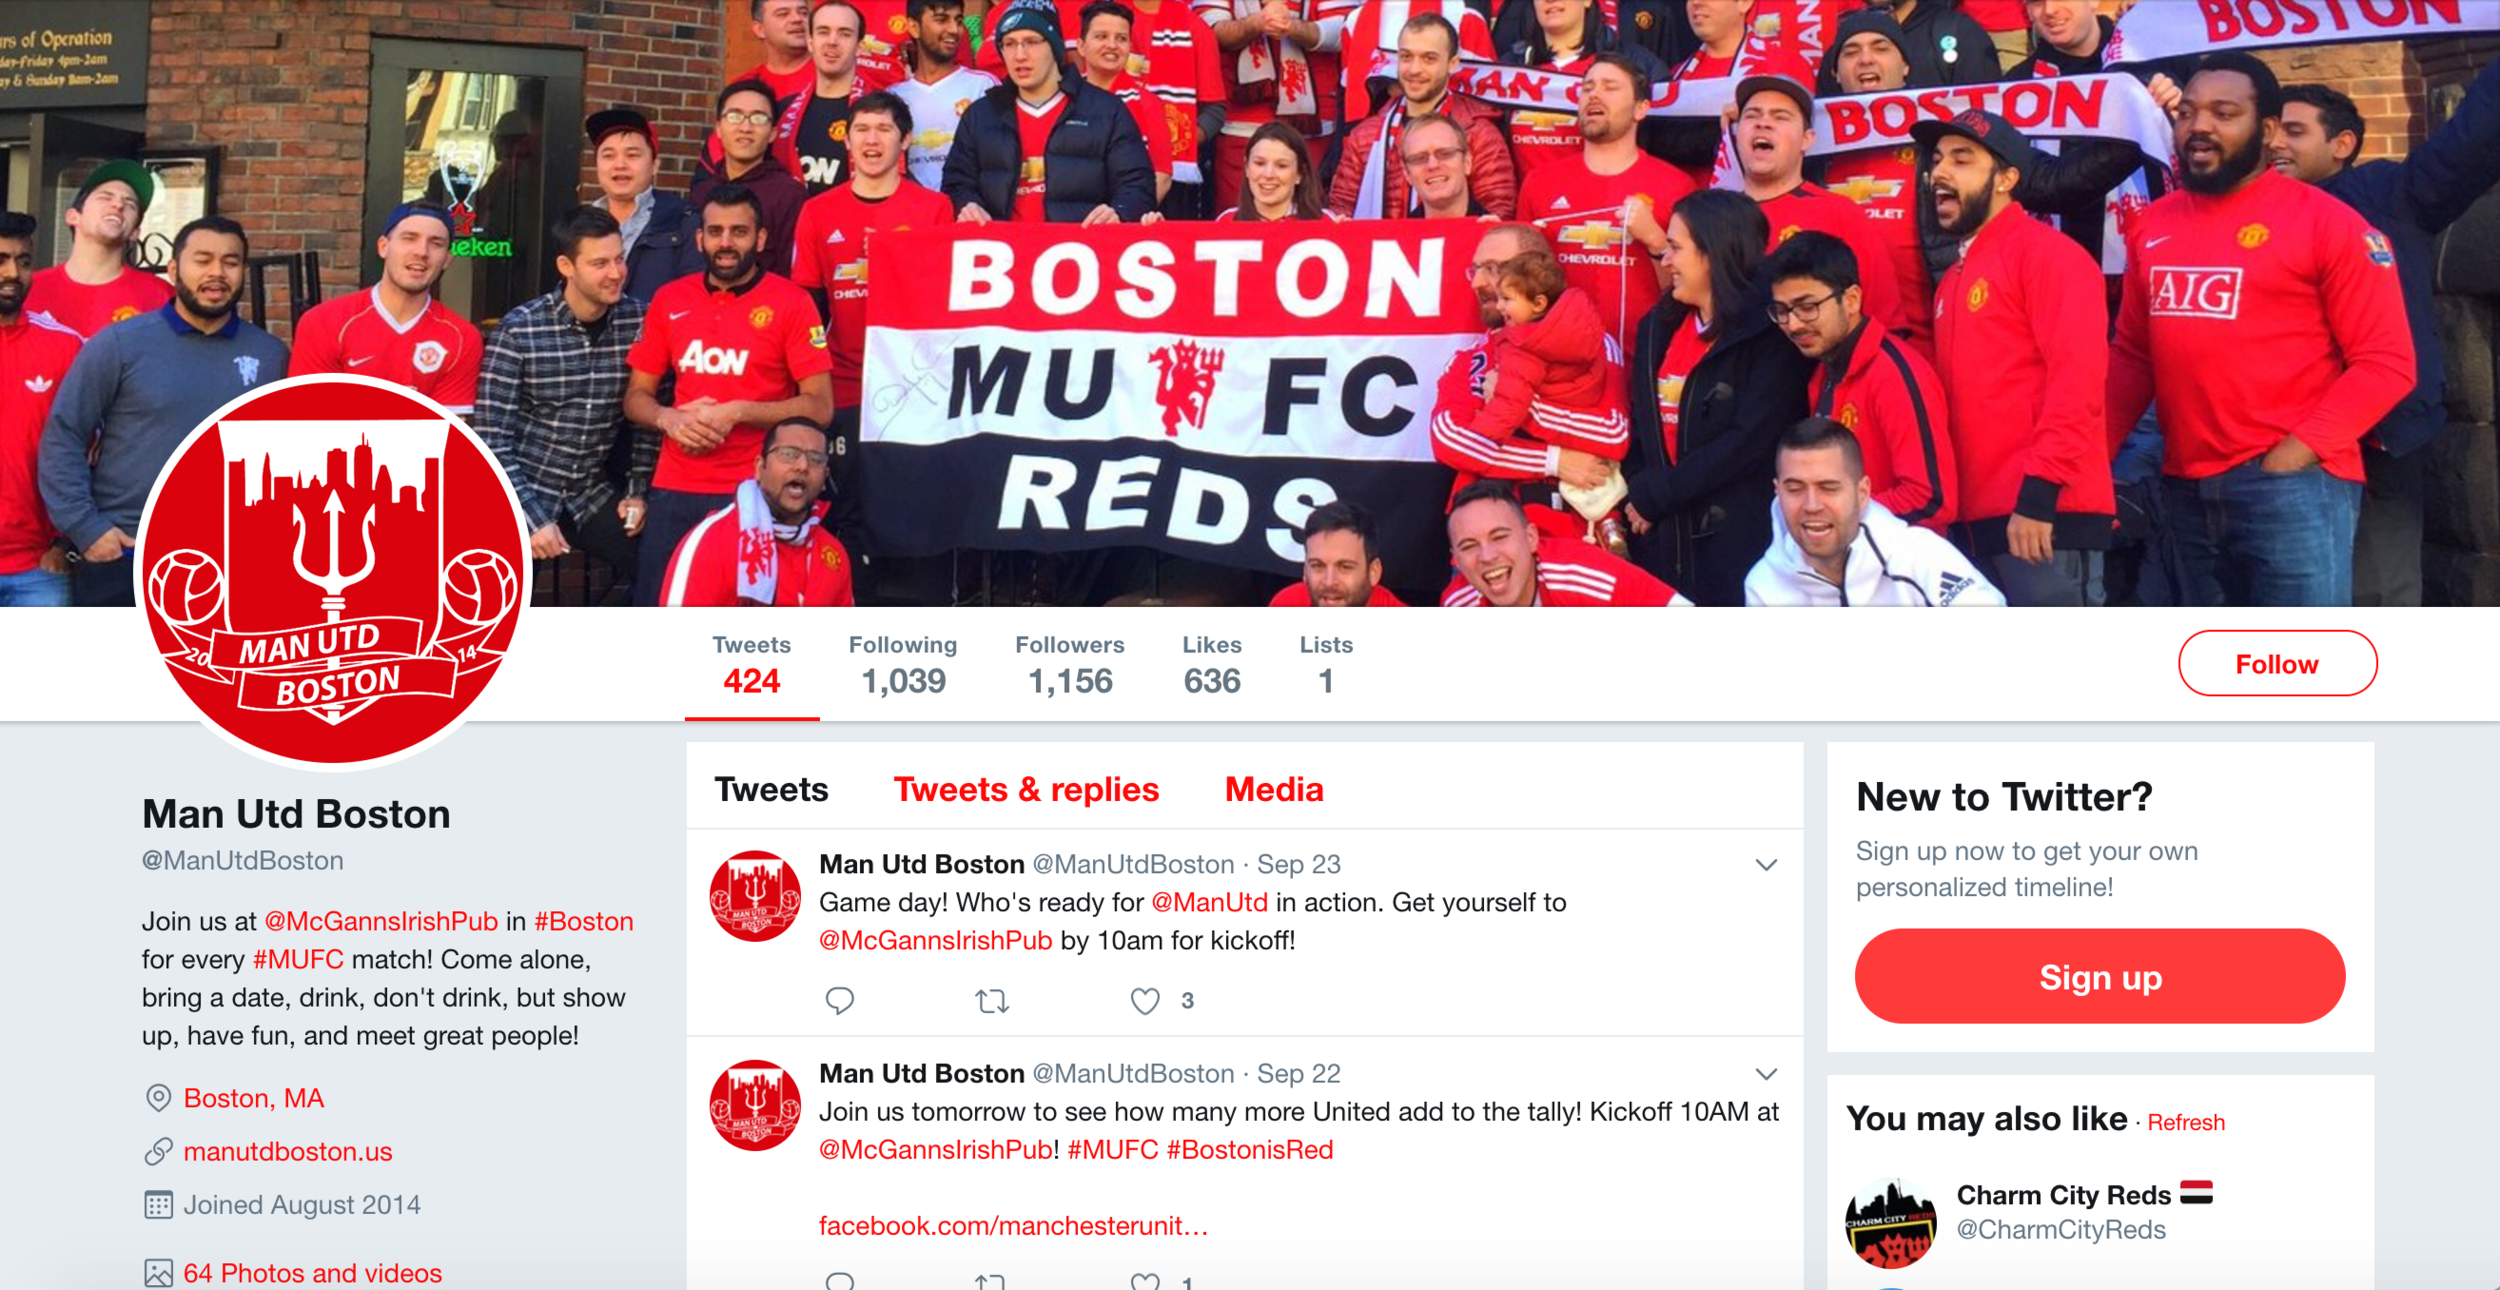 Largest Man United supporters group in the US. - Co-founded, promoted, and grew this group from 4 to 1000+ members in Boston, MA.